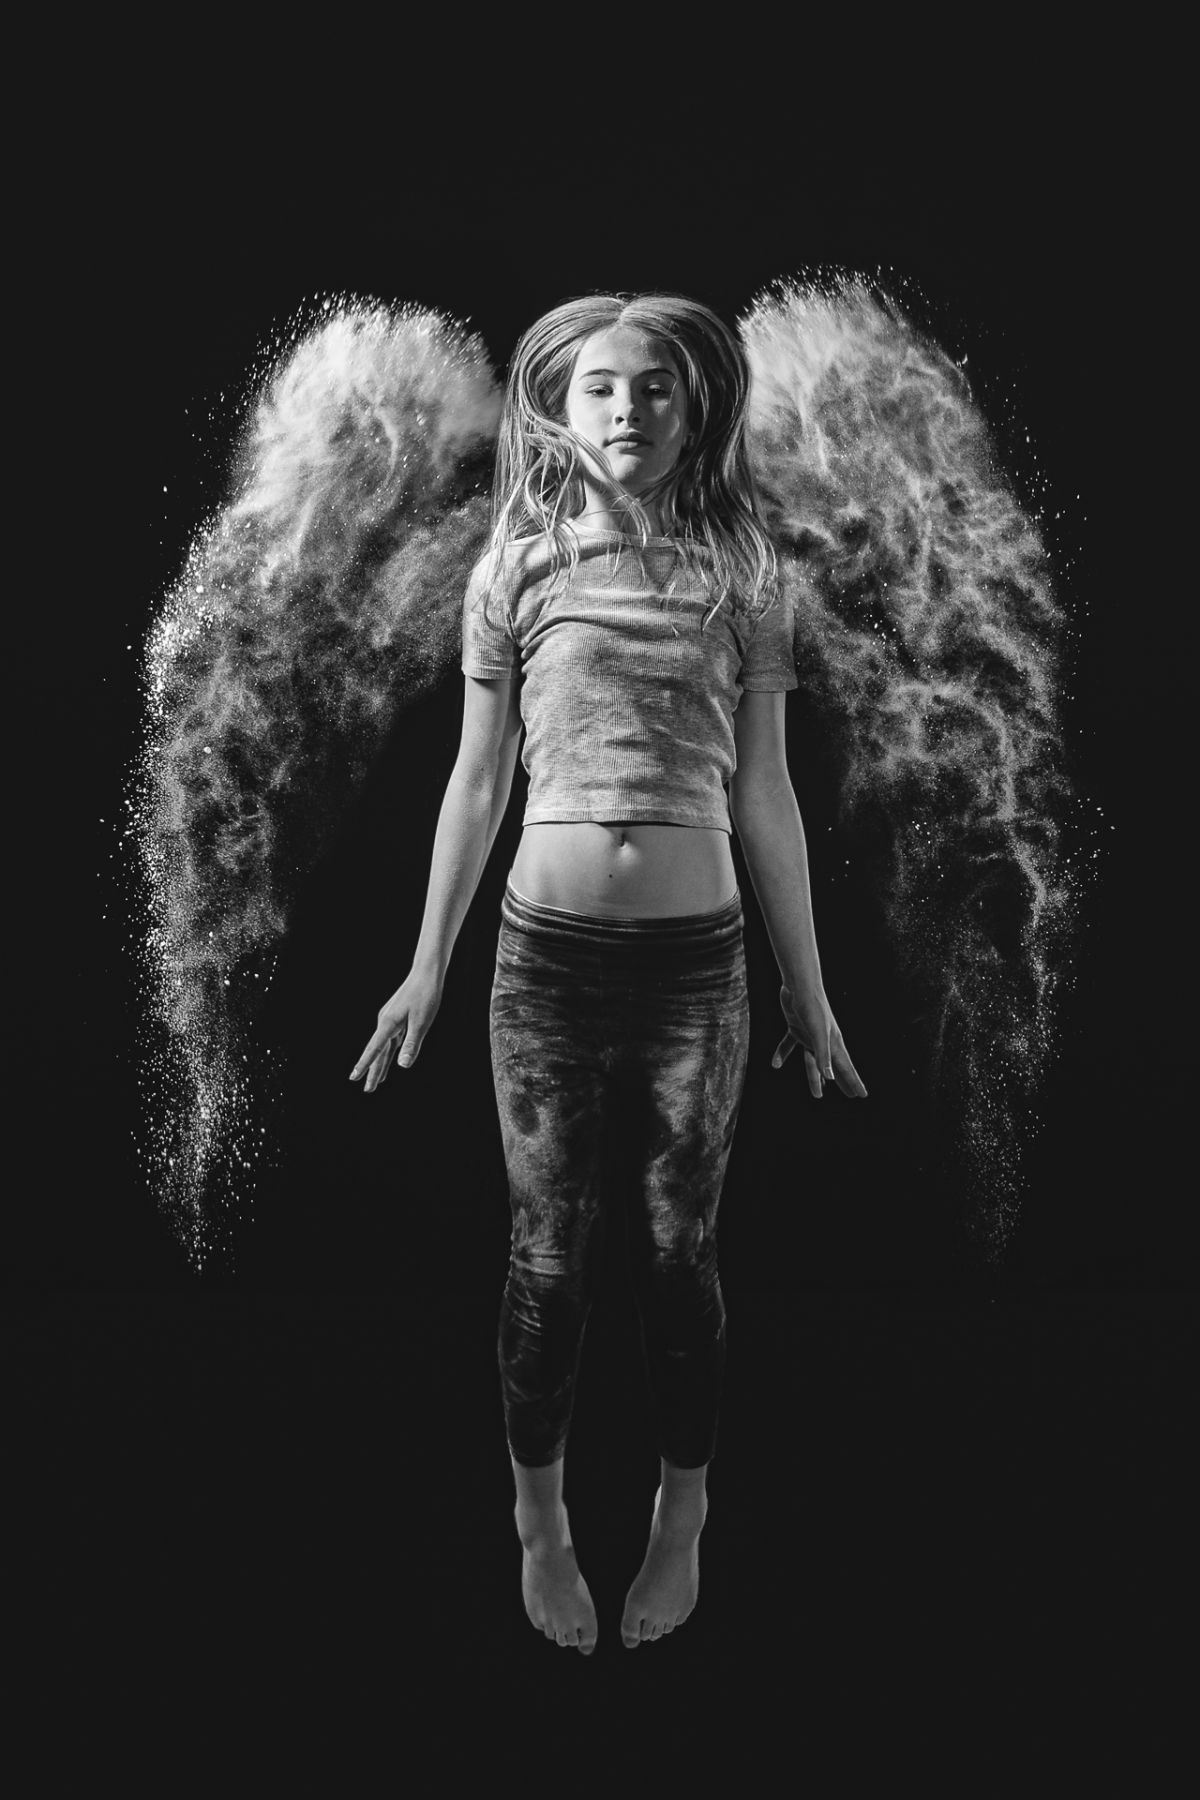 Girl seemingly floating with angel wings made out of flour